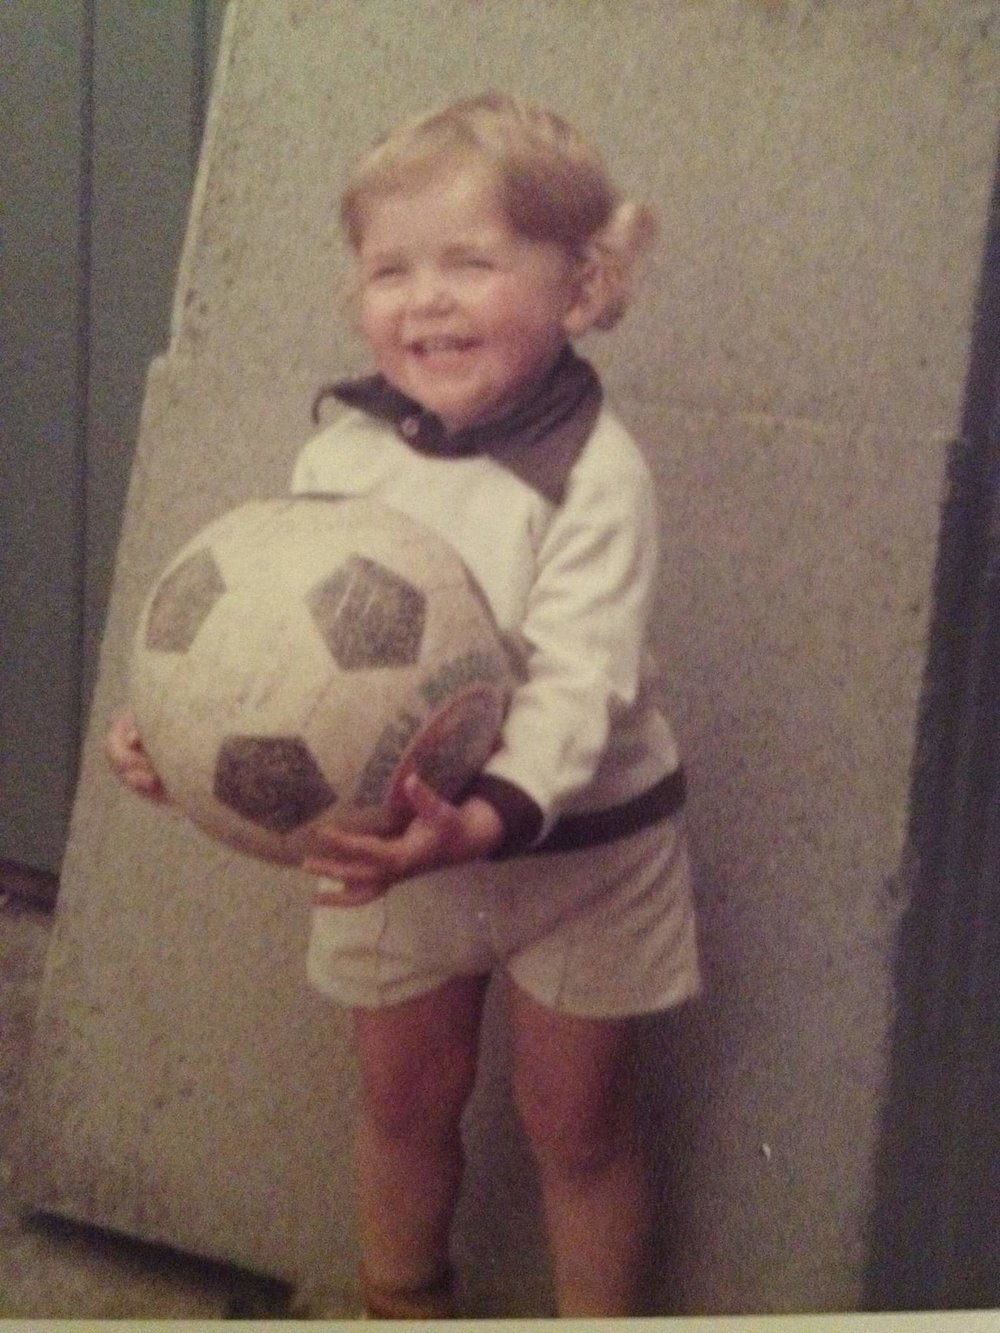 My best mate for a very long time - a football. I am 4 years old here :)